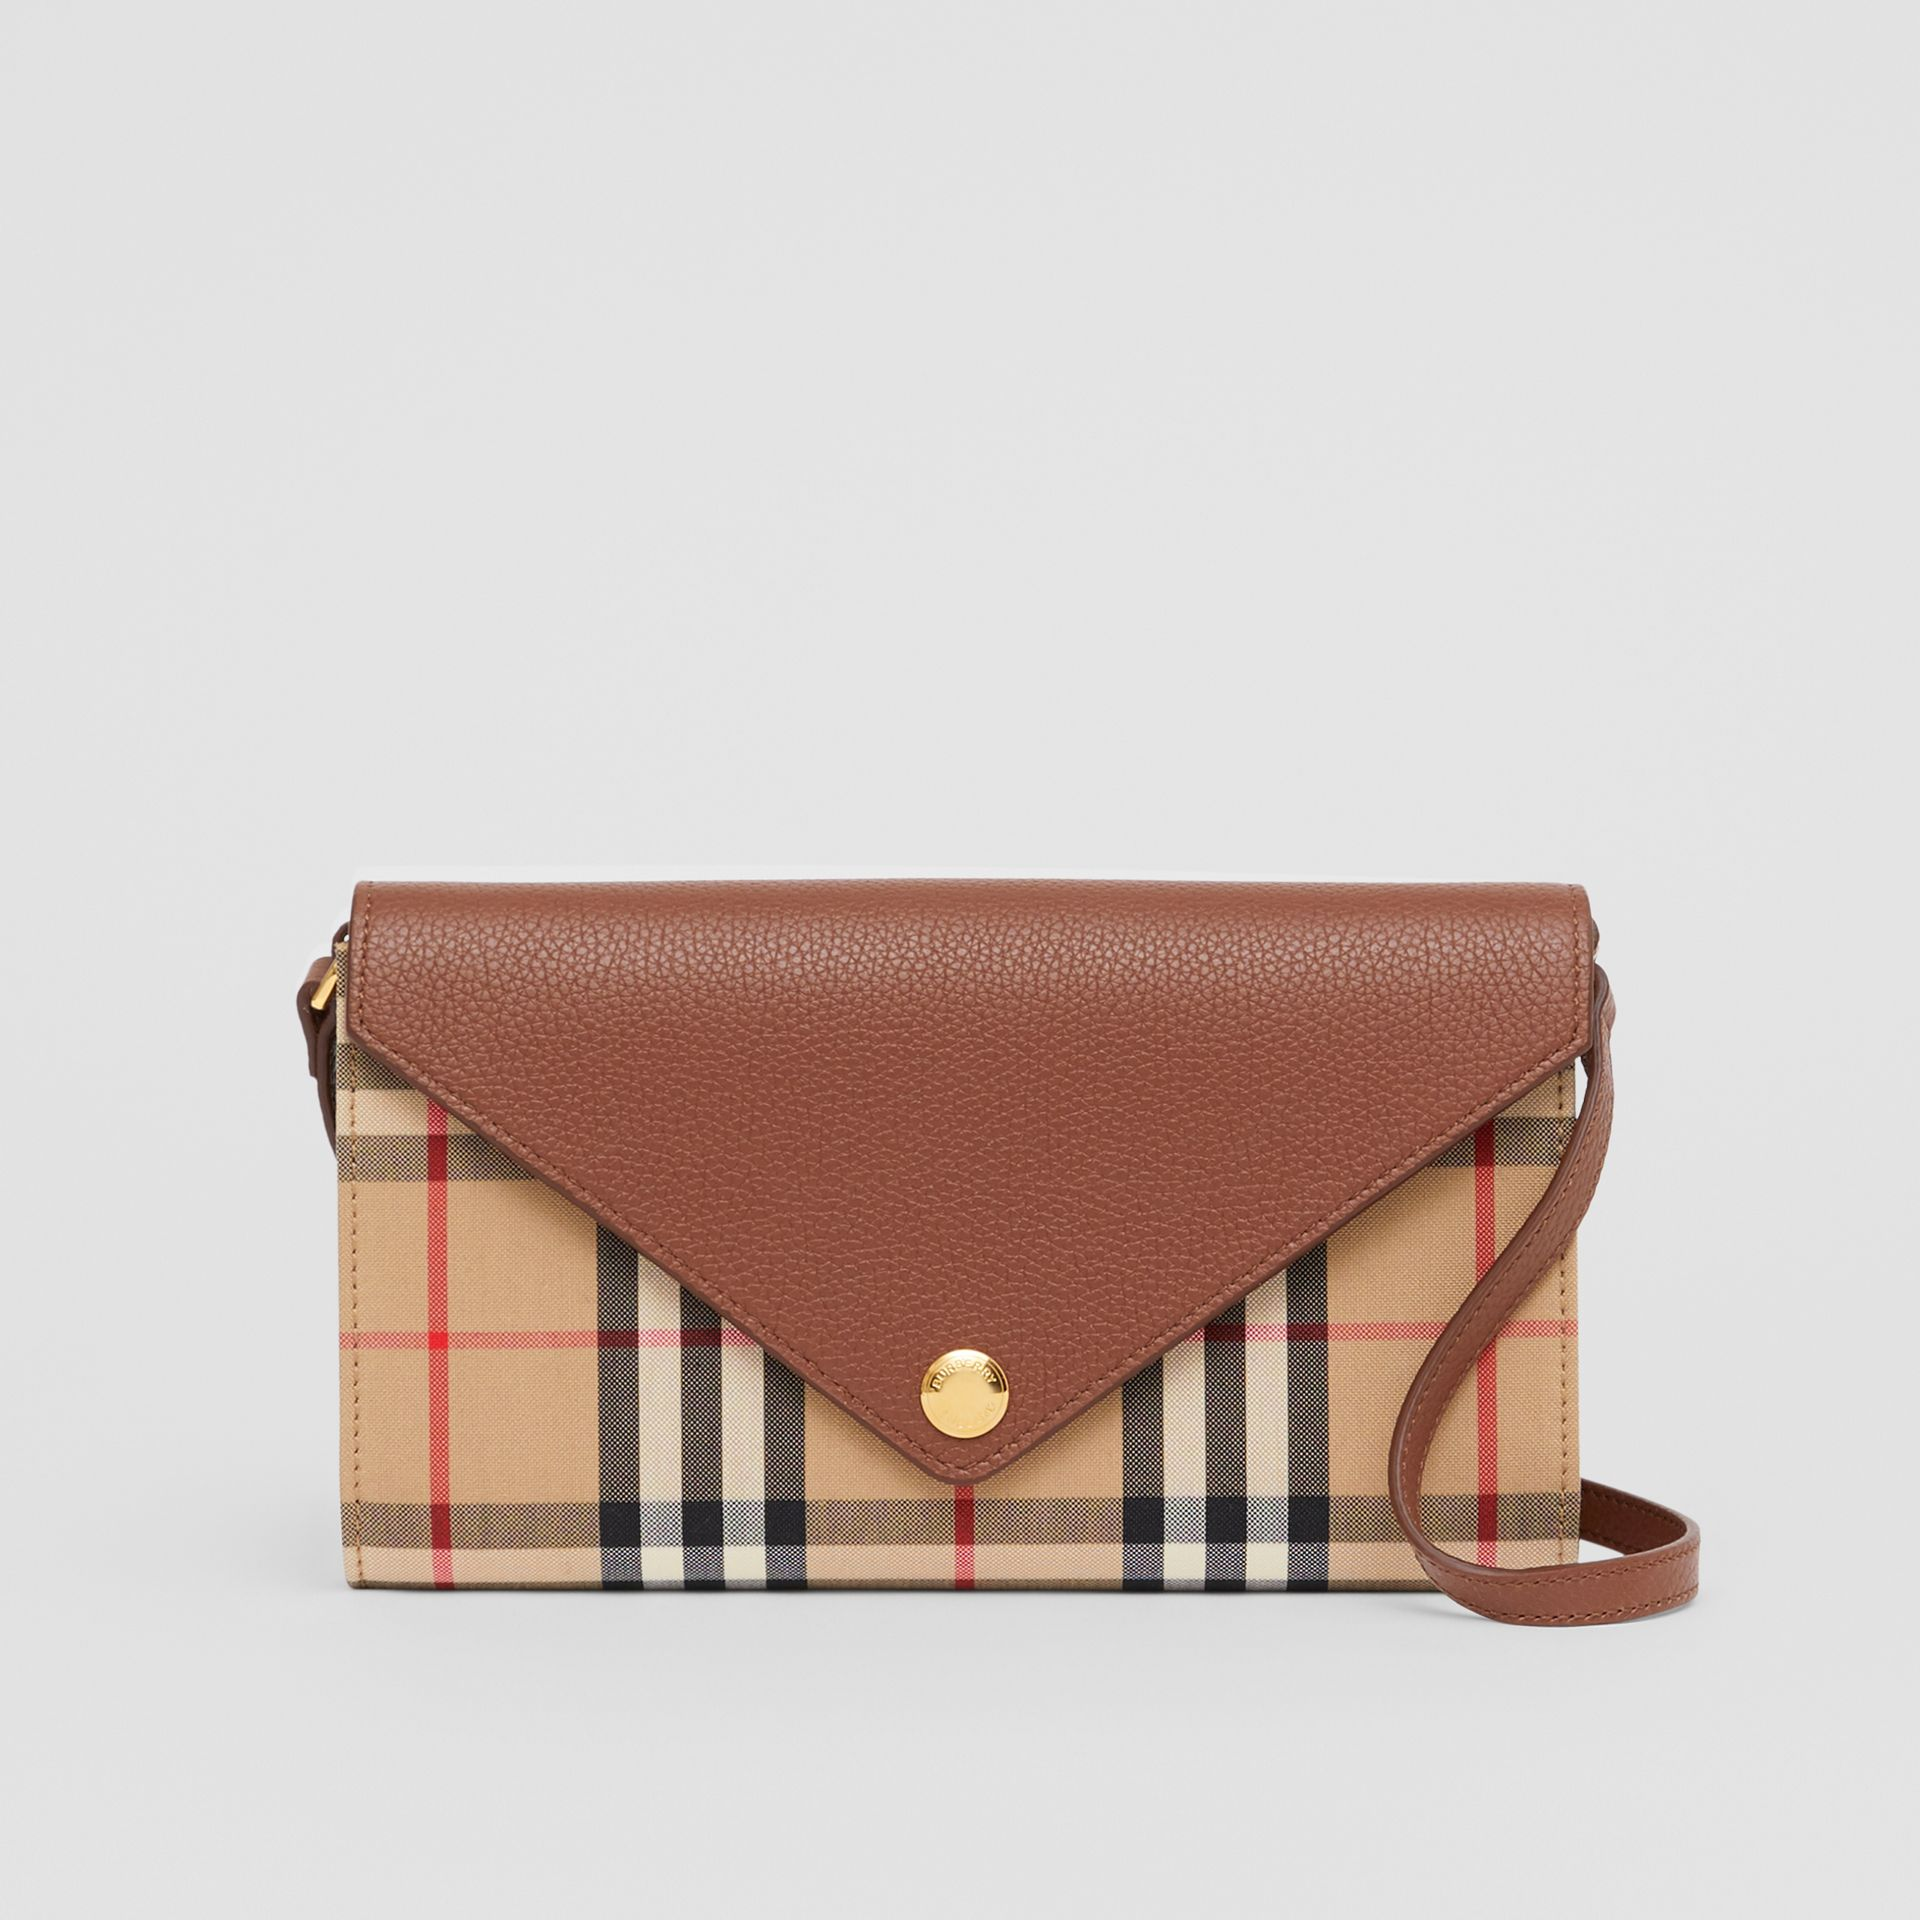 Vintage Check and Leather Wallet with Detachable Strap in Tan - Women | Burberry - gallery image 0